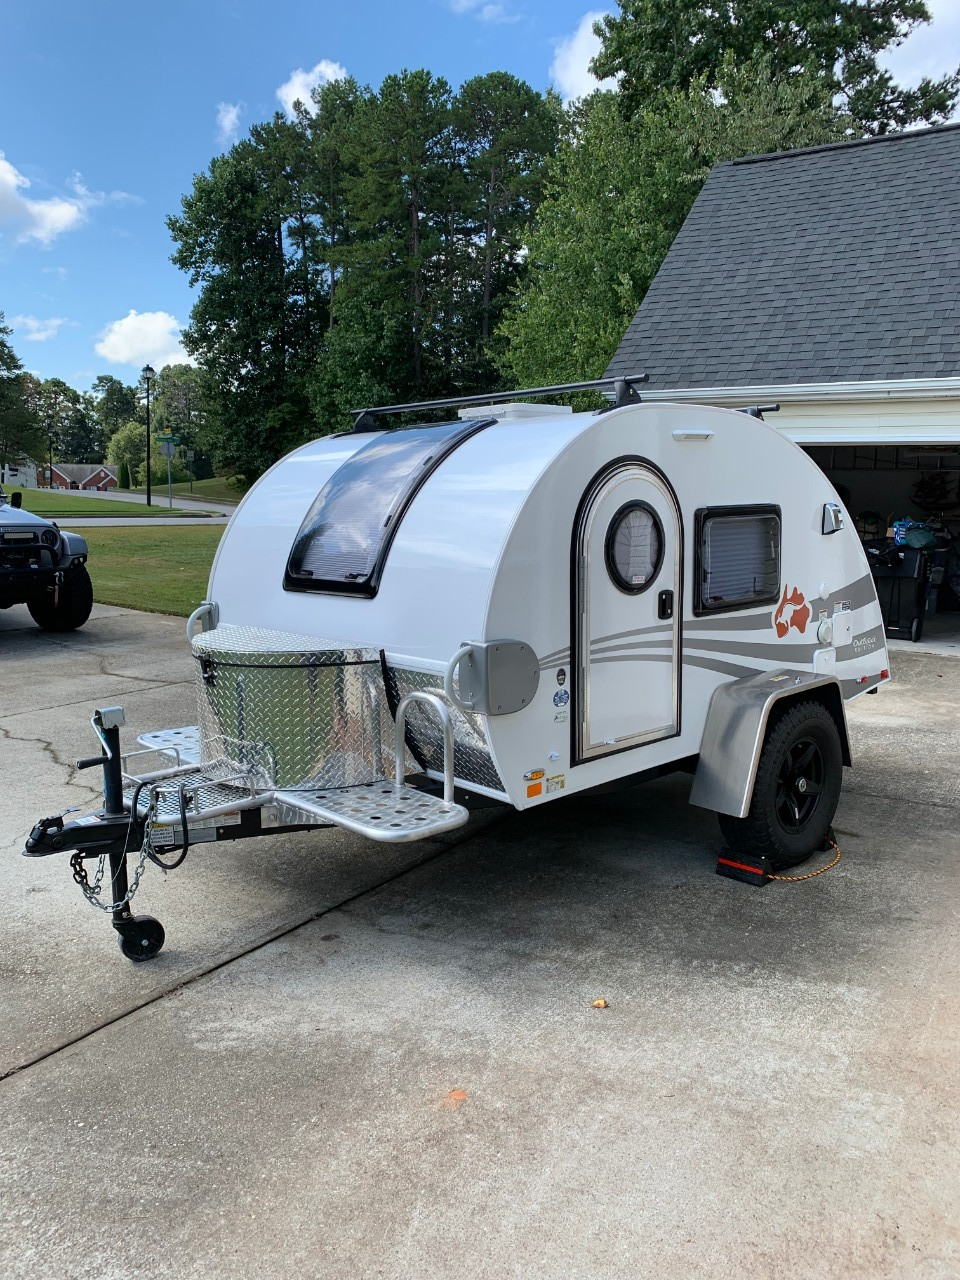 Used Nucamp For Sale - Nucamp Travel Trailers - RV Trader